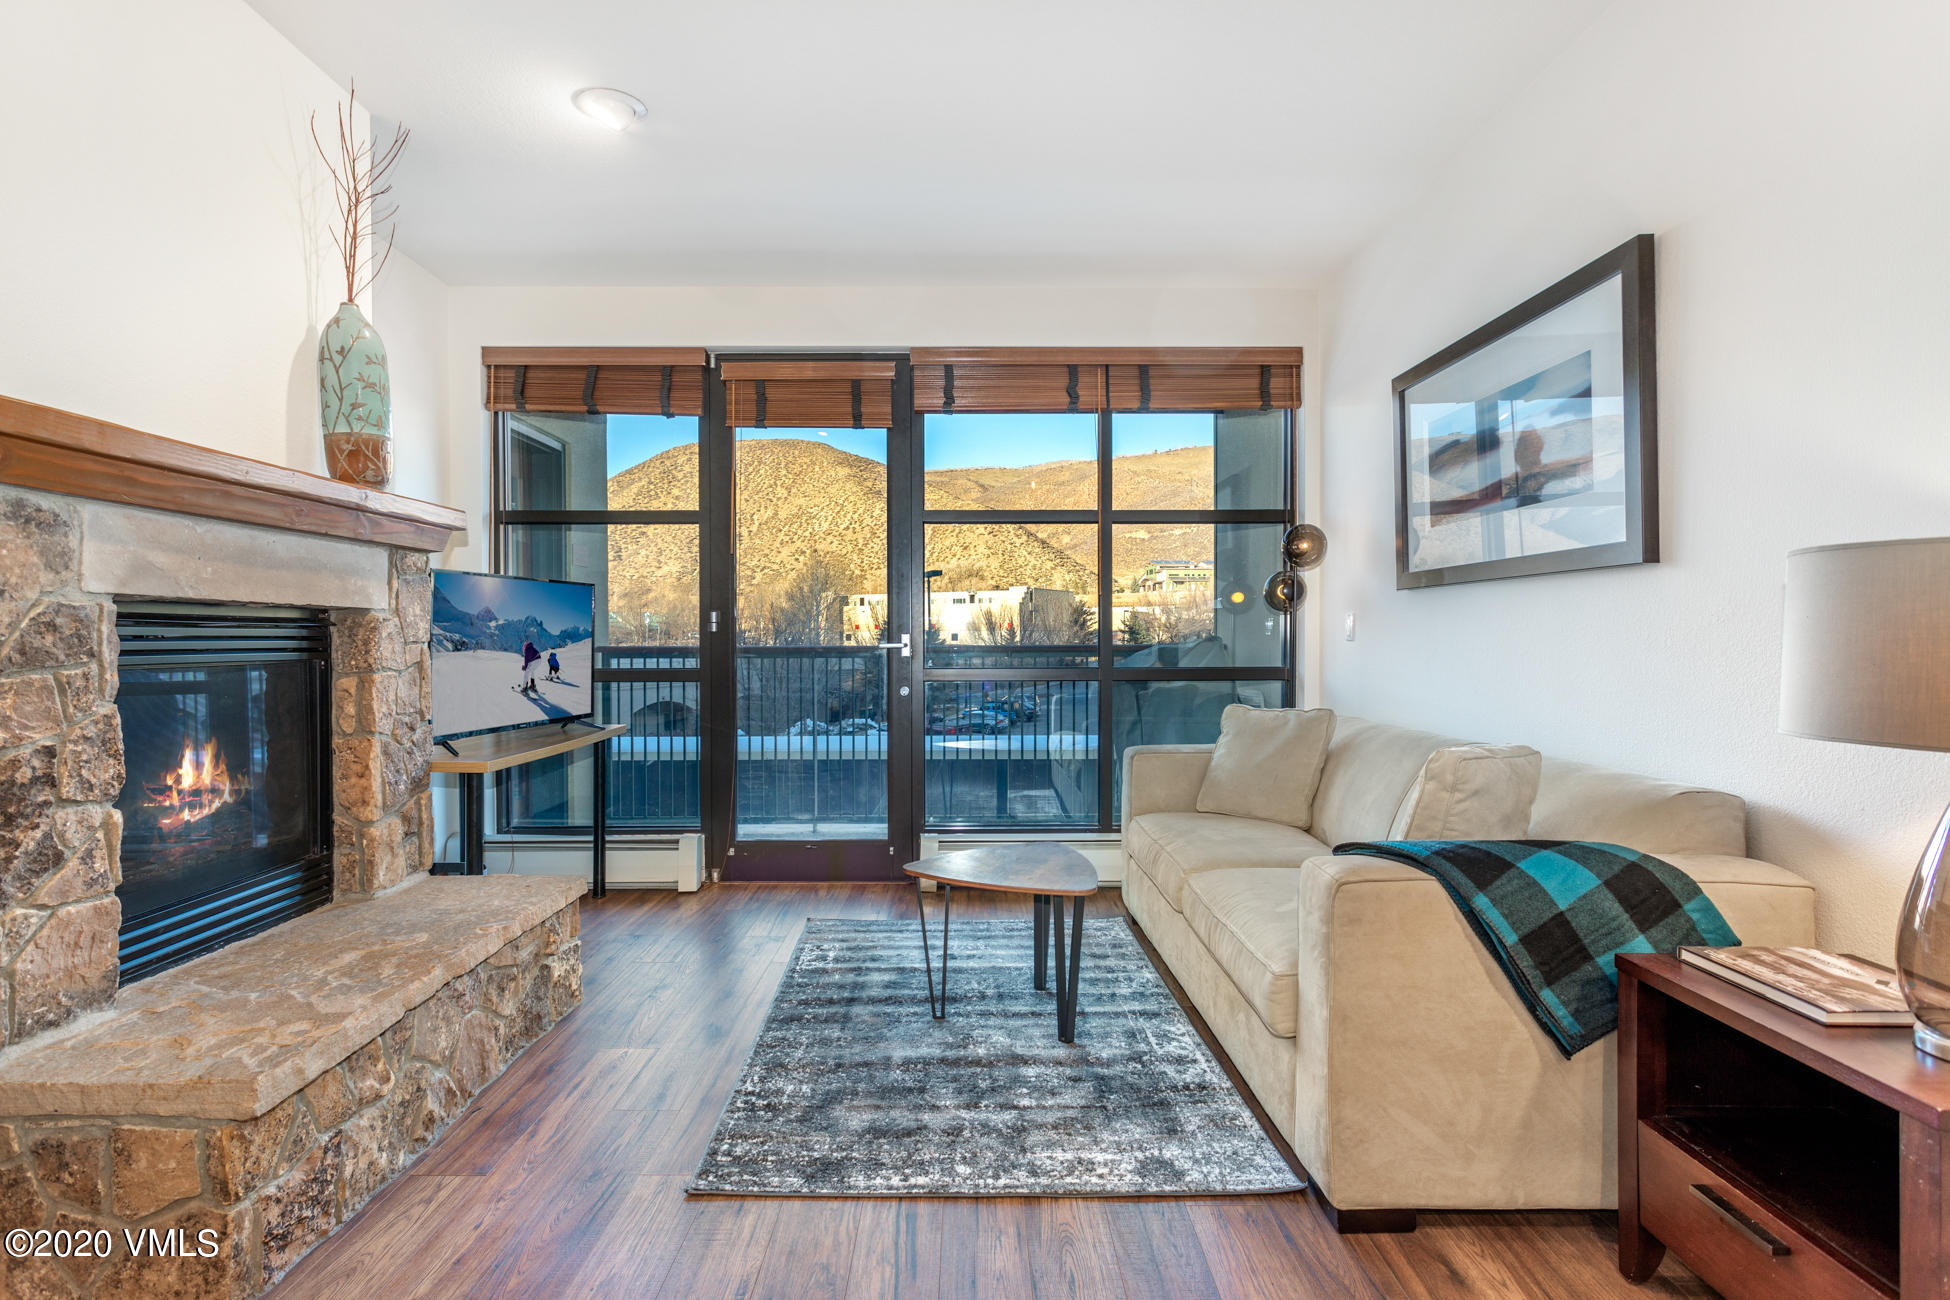 Live in the heart of the Vail Valley. This 1-bedroom residence is centrally located within walking distance to shopping, restaurants, grocery store, bus route and nearby ski areas. Enjoy this recently updated and freshly painted home with newer floors, stainless appliances, stone gas fireplace, washer/dryer and outdoor deck with grill. Amenities in the building include a fitness area, steam room, assigned underground parking, ski locker and extra storage closet in the garage. Offered furnished, this residence is ready for you to enjoy the mountain lifestyle. Listing broker is also the Seller and is a licensed real estate broker in the state of Colorado.